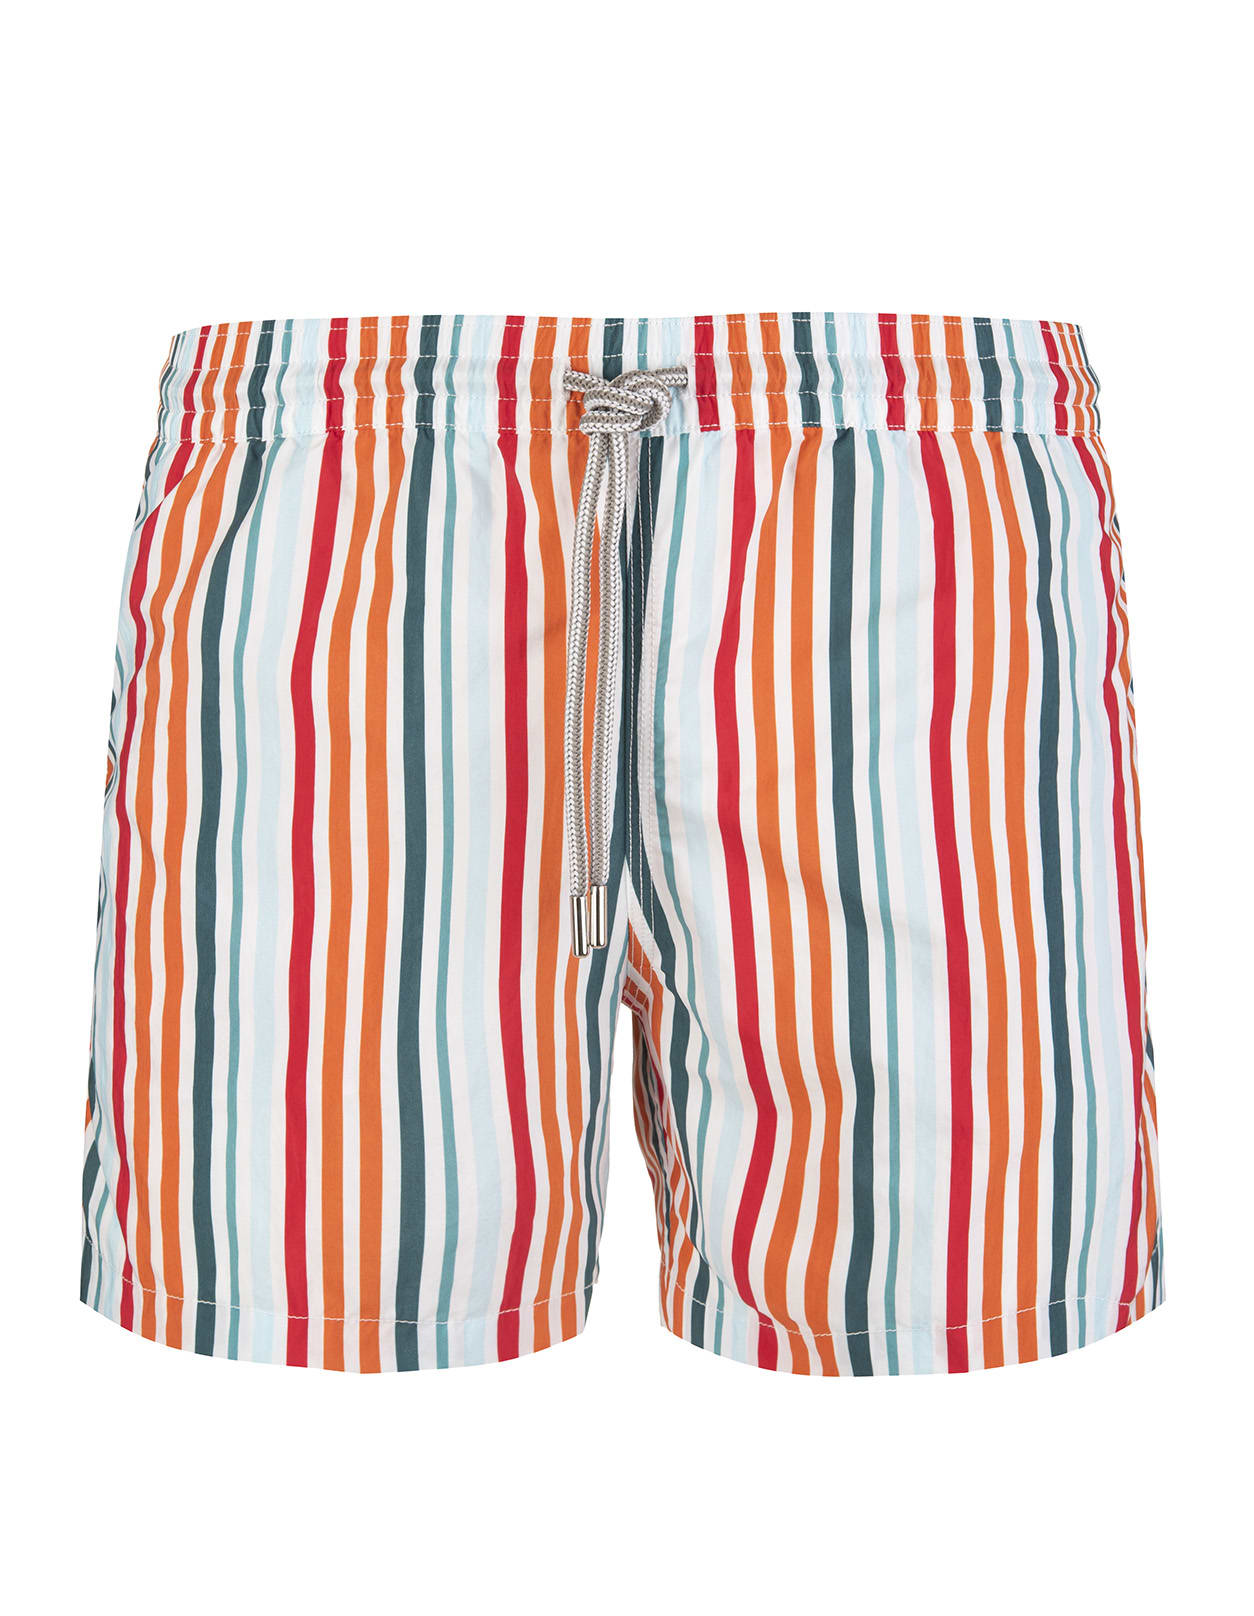 Swimsuit With Orange And Green Shades Stripes